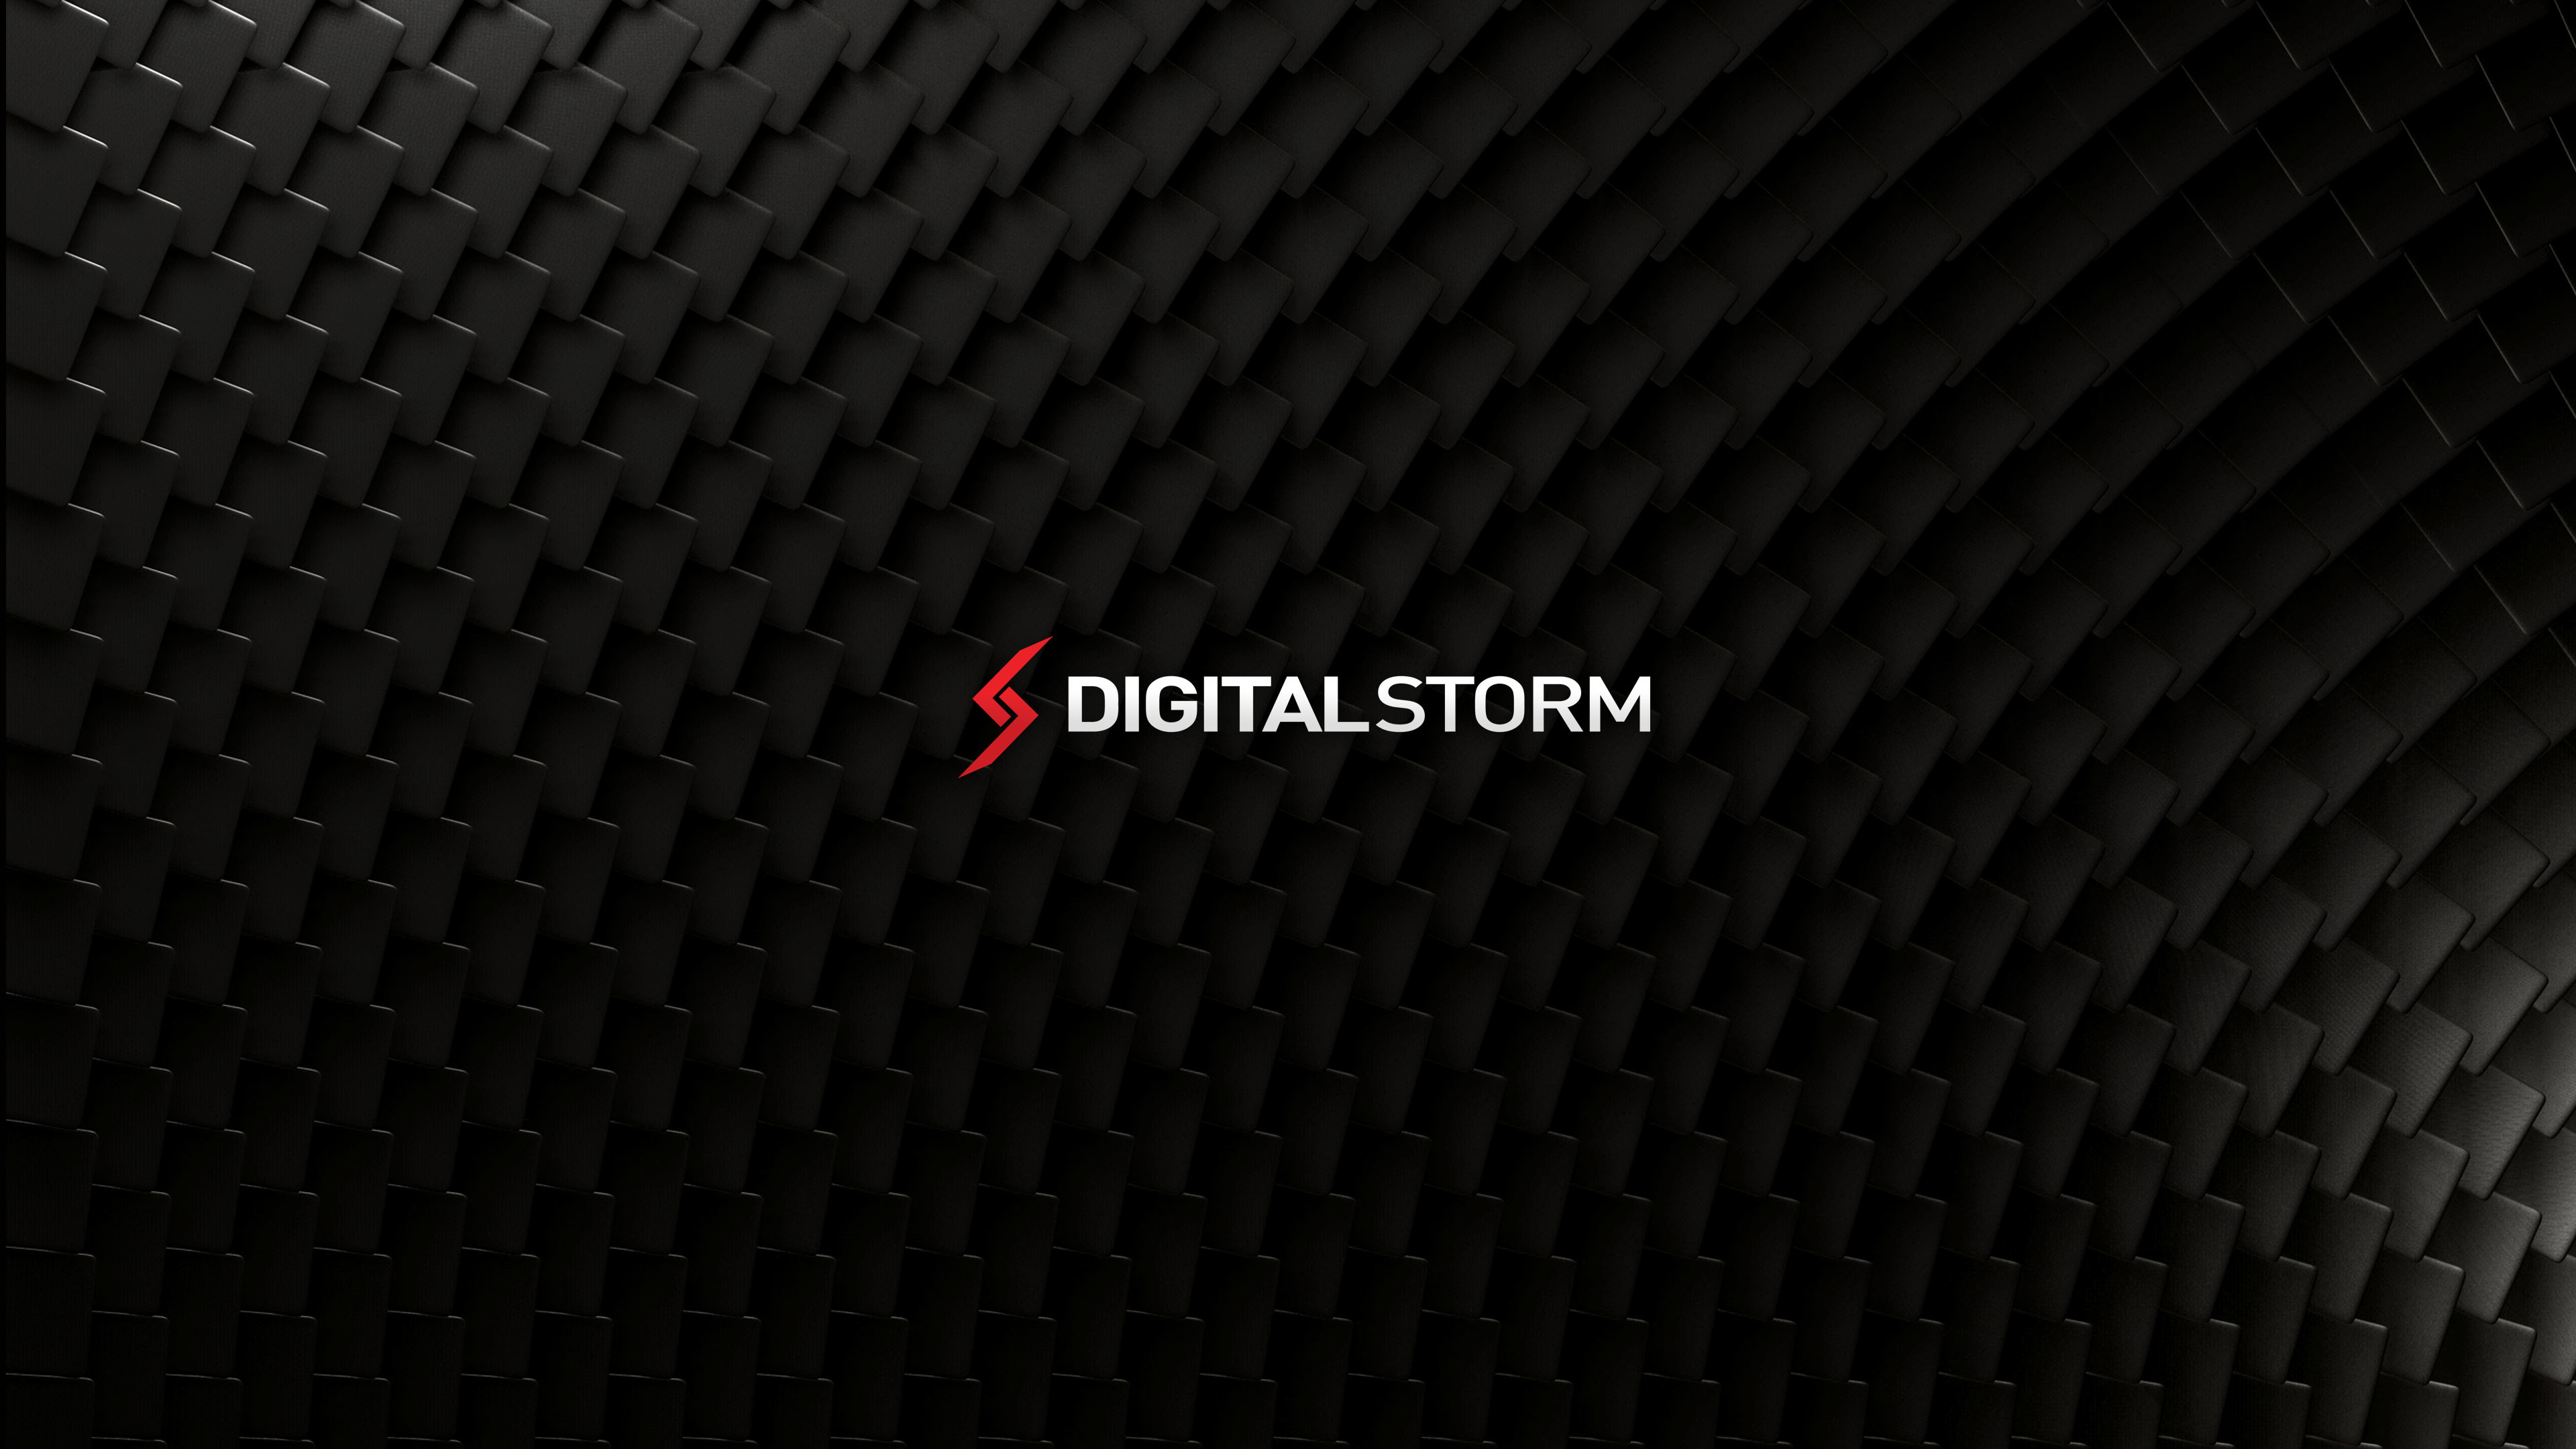 3840x2160 f. Digital Storm Stacked Carbon Wallpaper